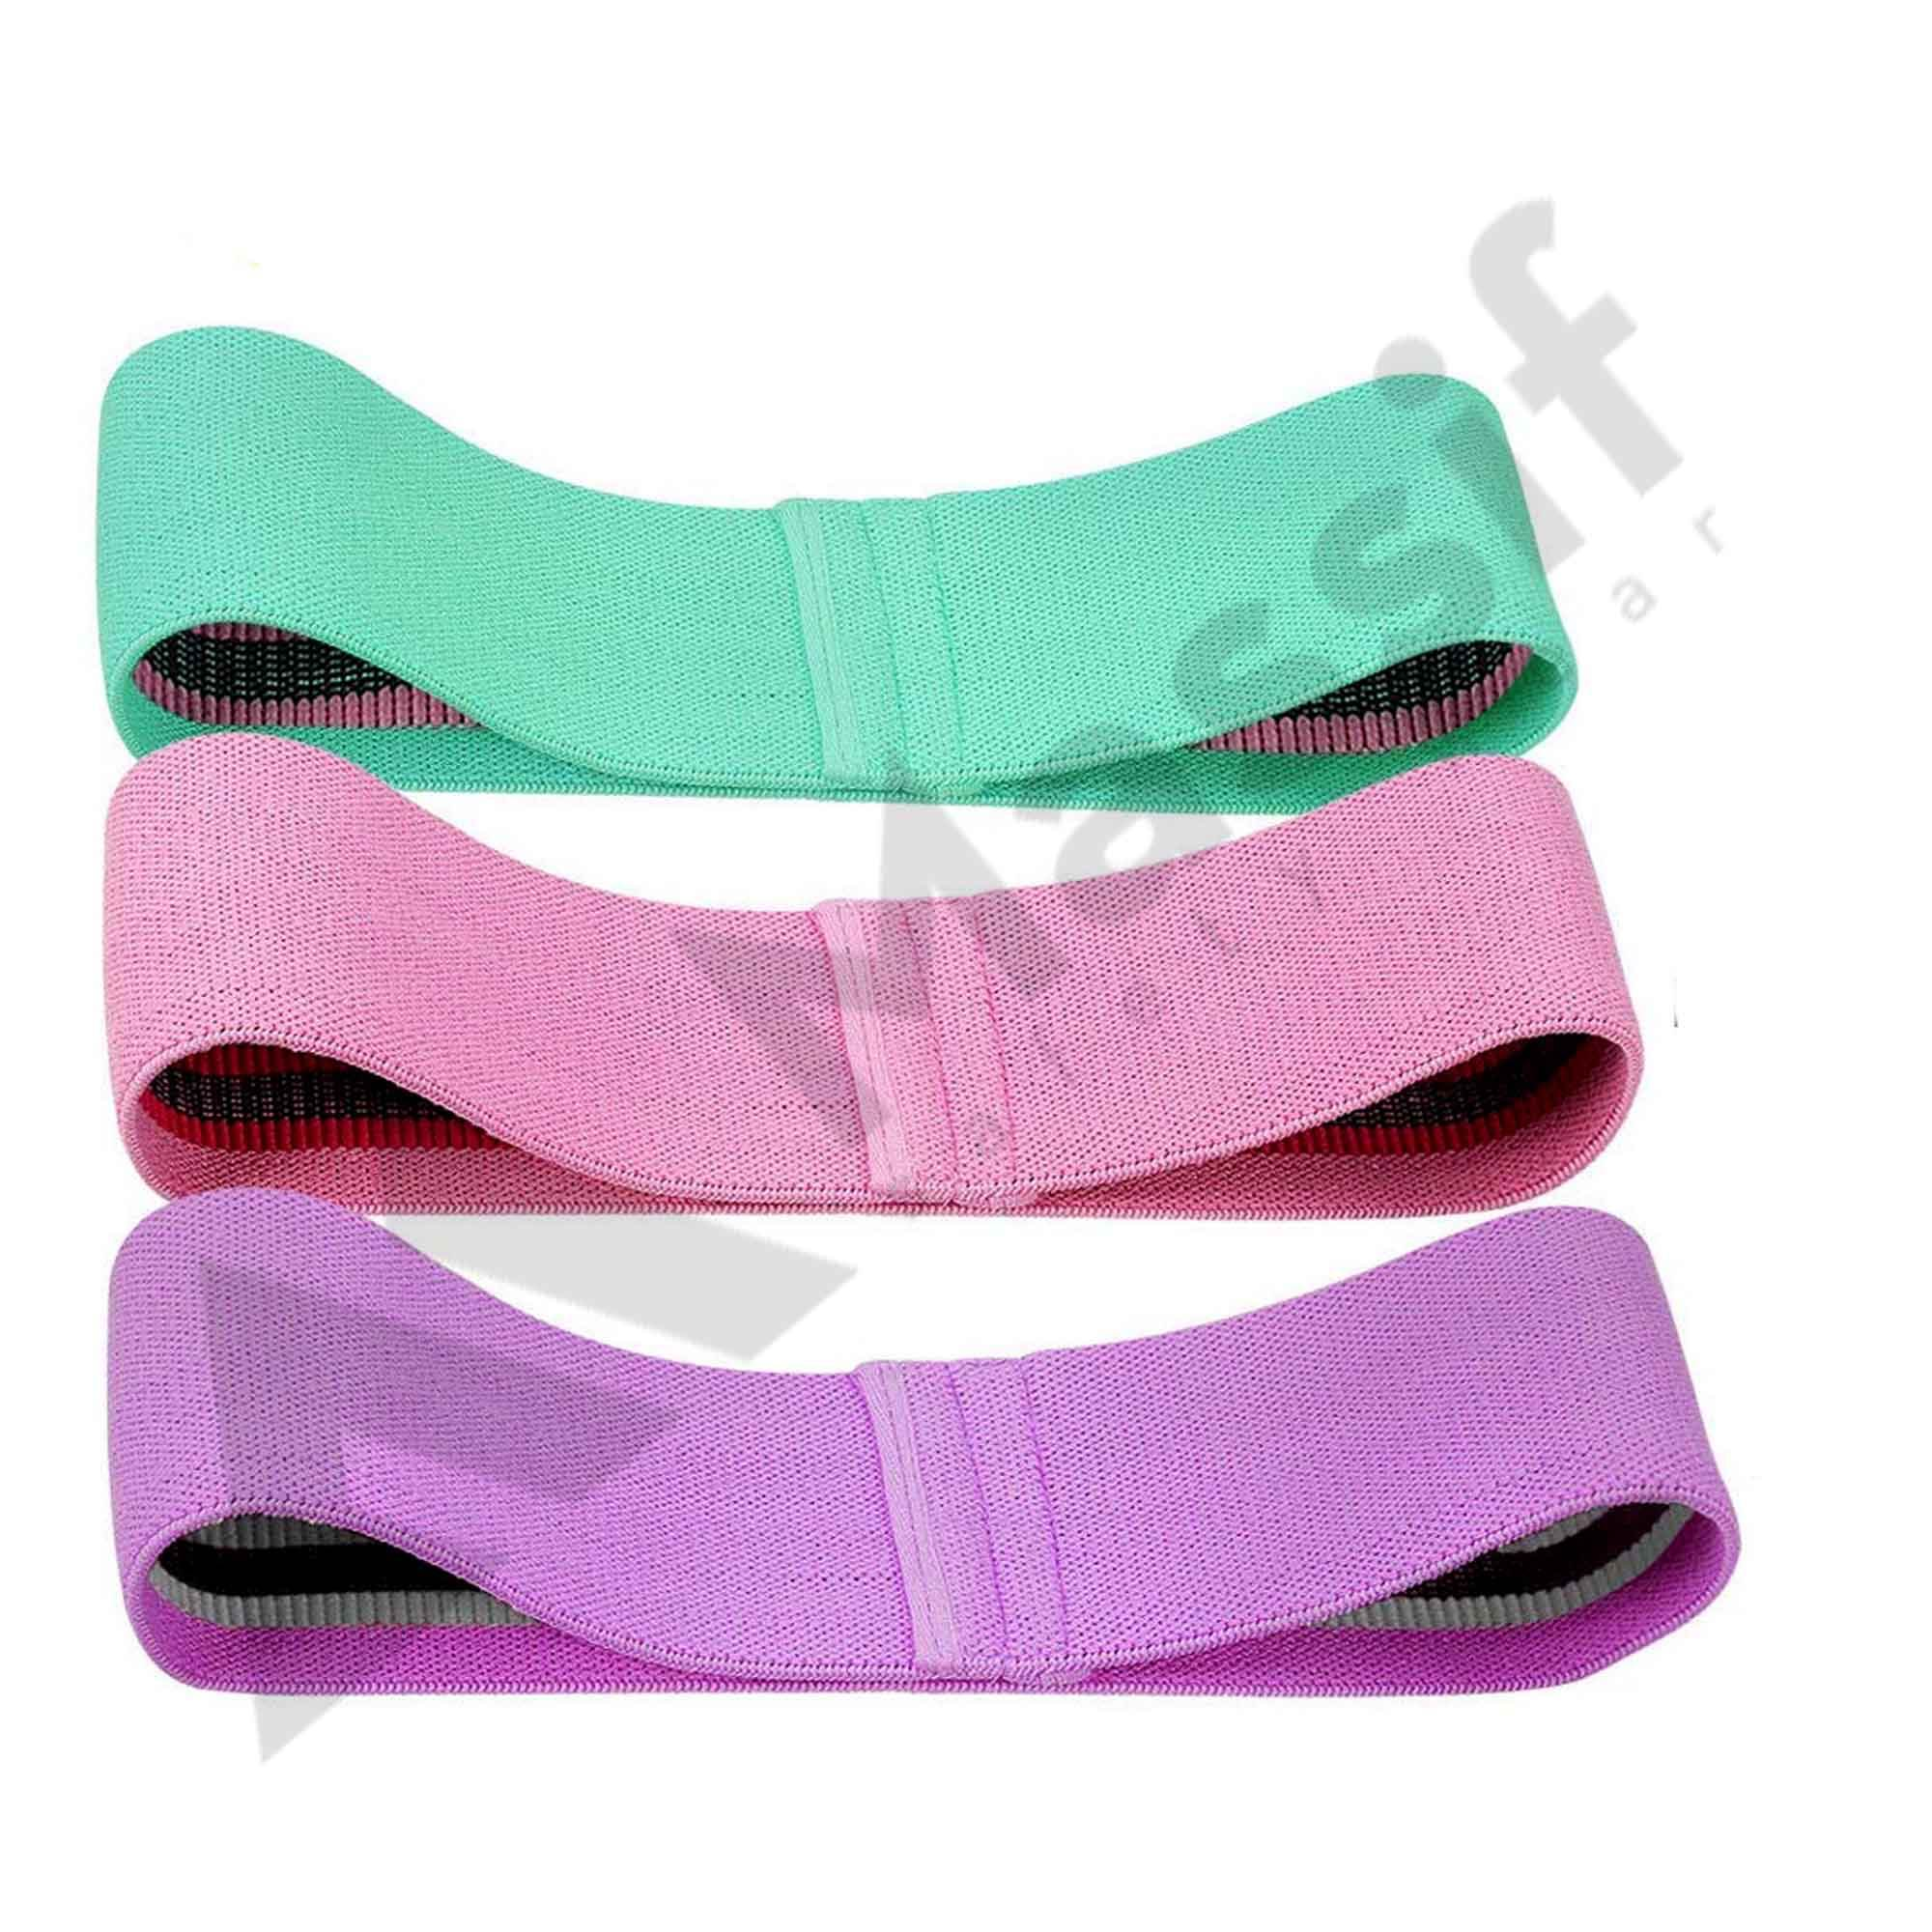 Adjustable Resistance Hip Loop bands for Booty and legs